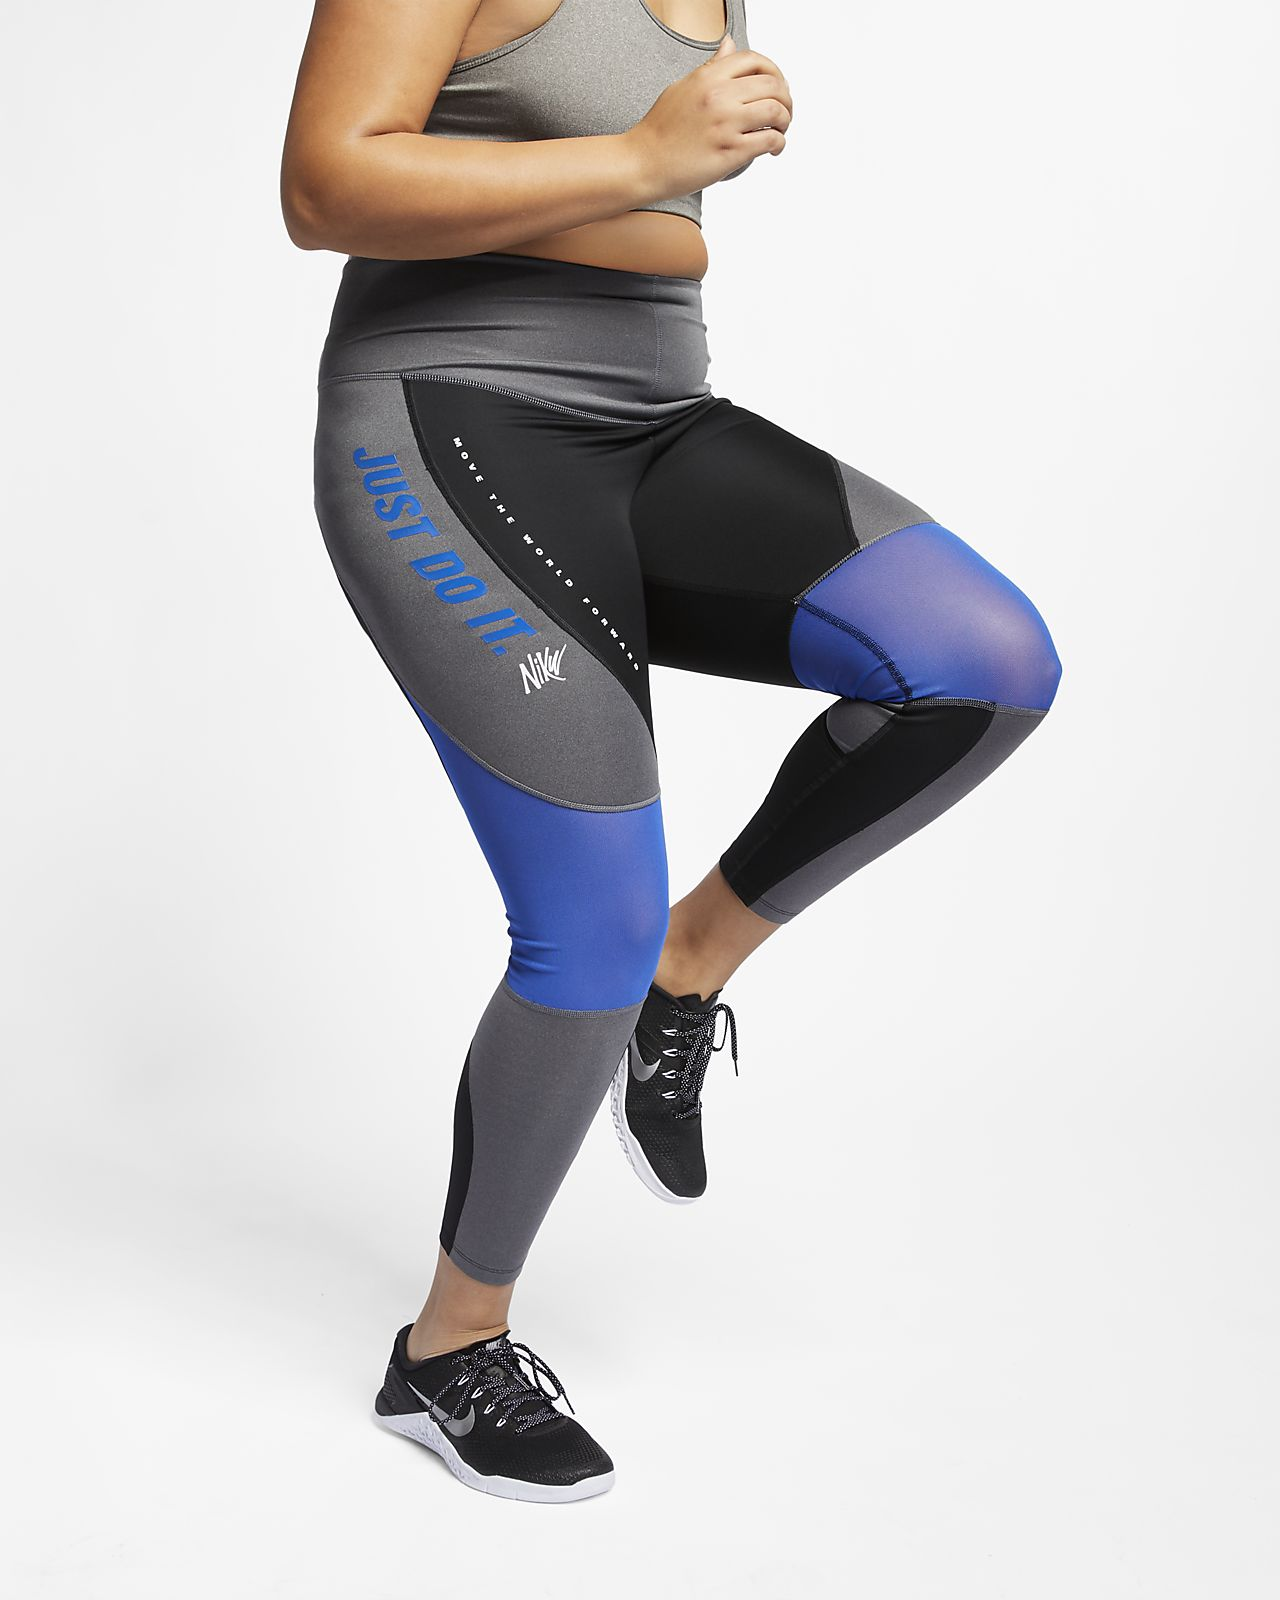 38e0ec10050 Nike Power Women s Training Tights (Plus Size). Nike.com